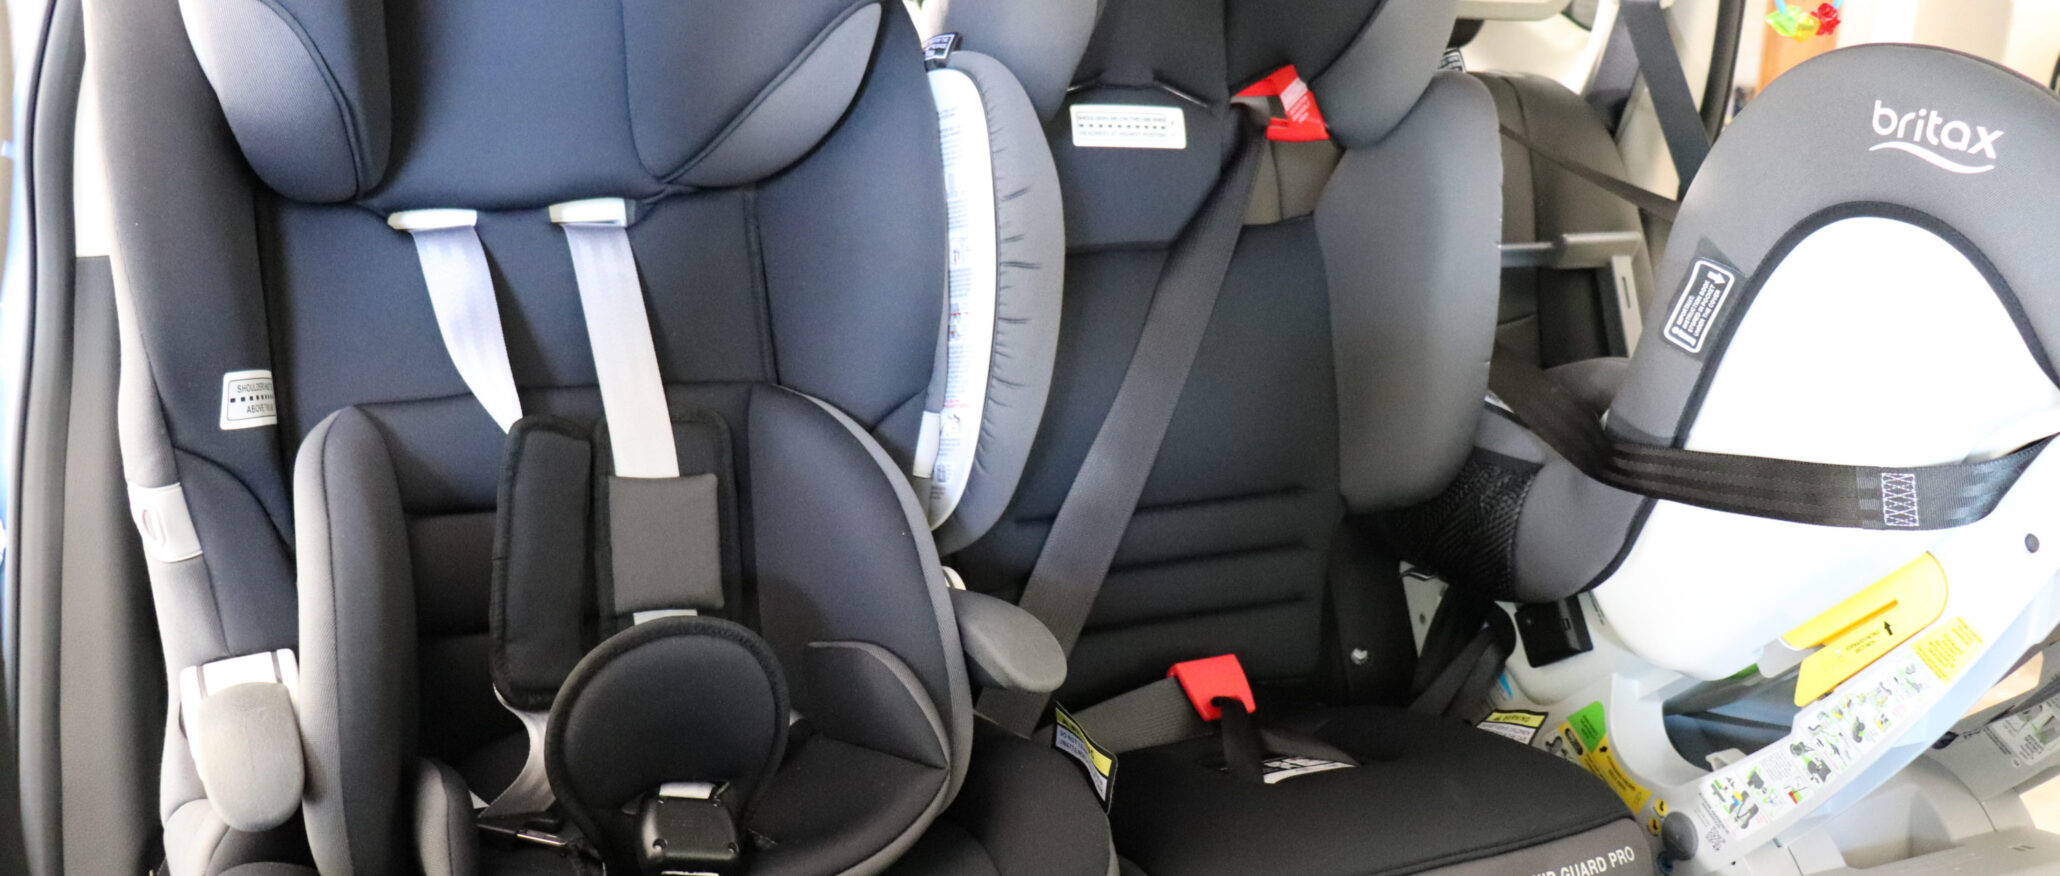 Which 5 Seat cars will fit 3 child seats